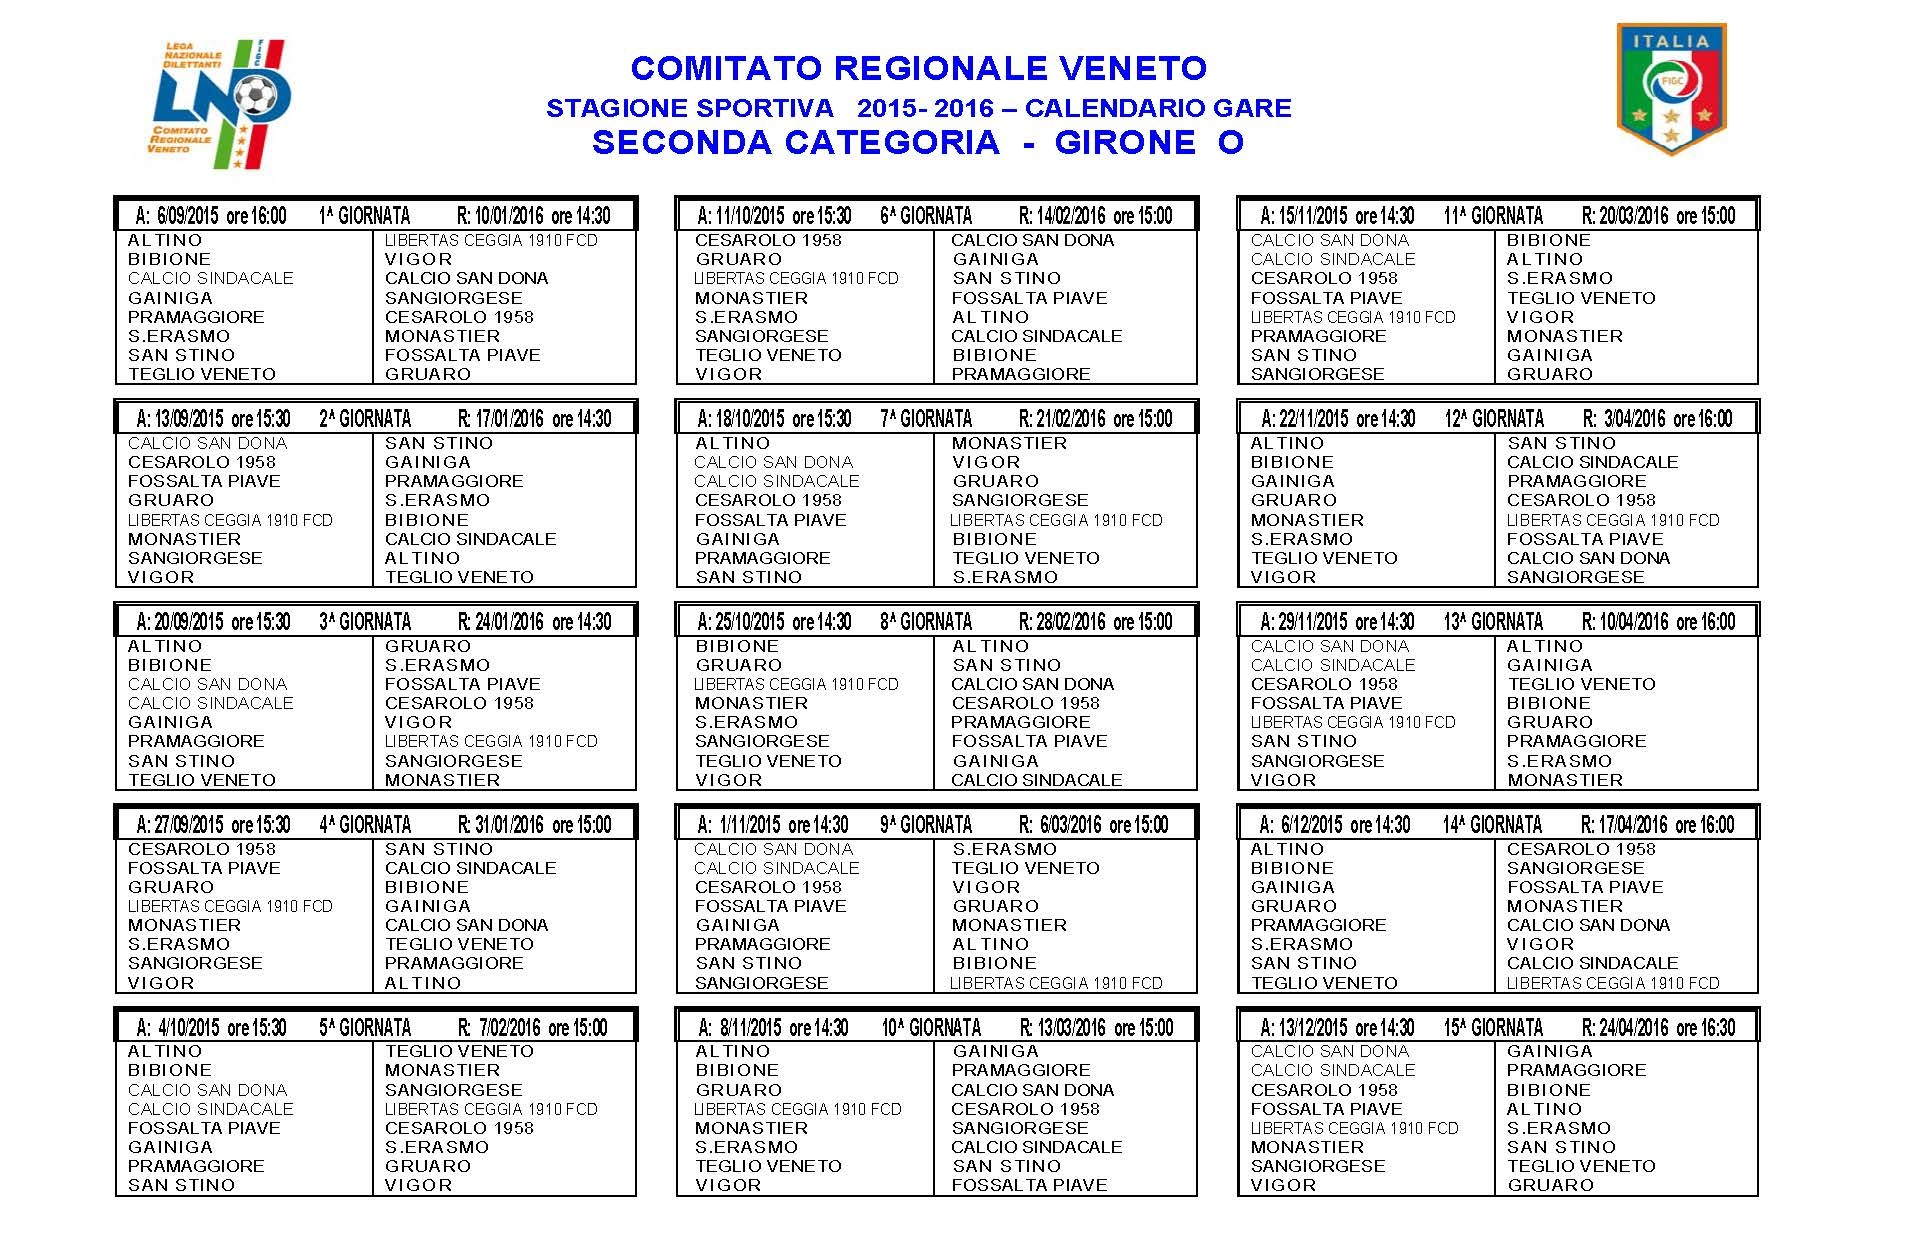 Calendario Seconda Categoria Veneto.Calendari Ecco Tutti Quelli Della Seconda Categoria